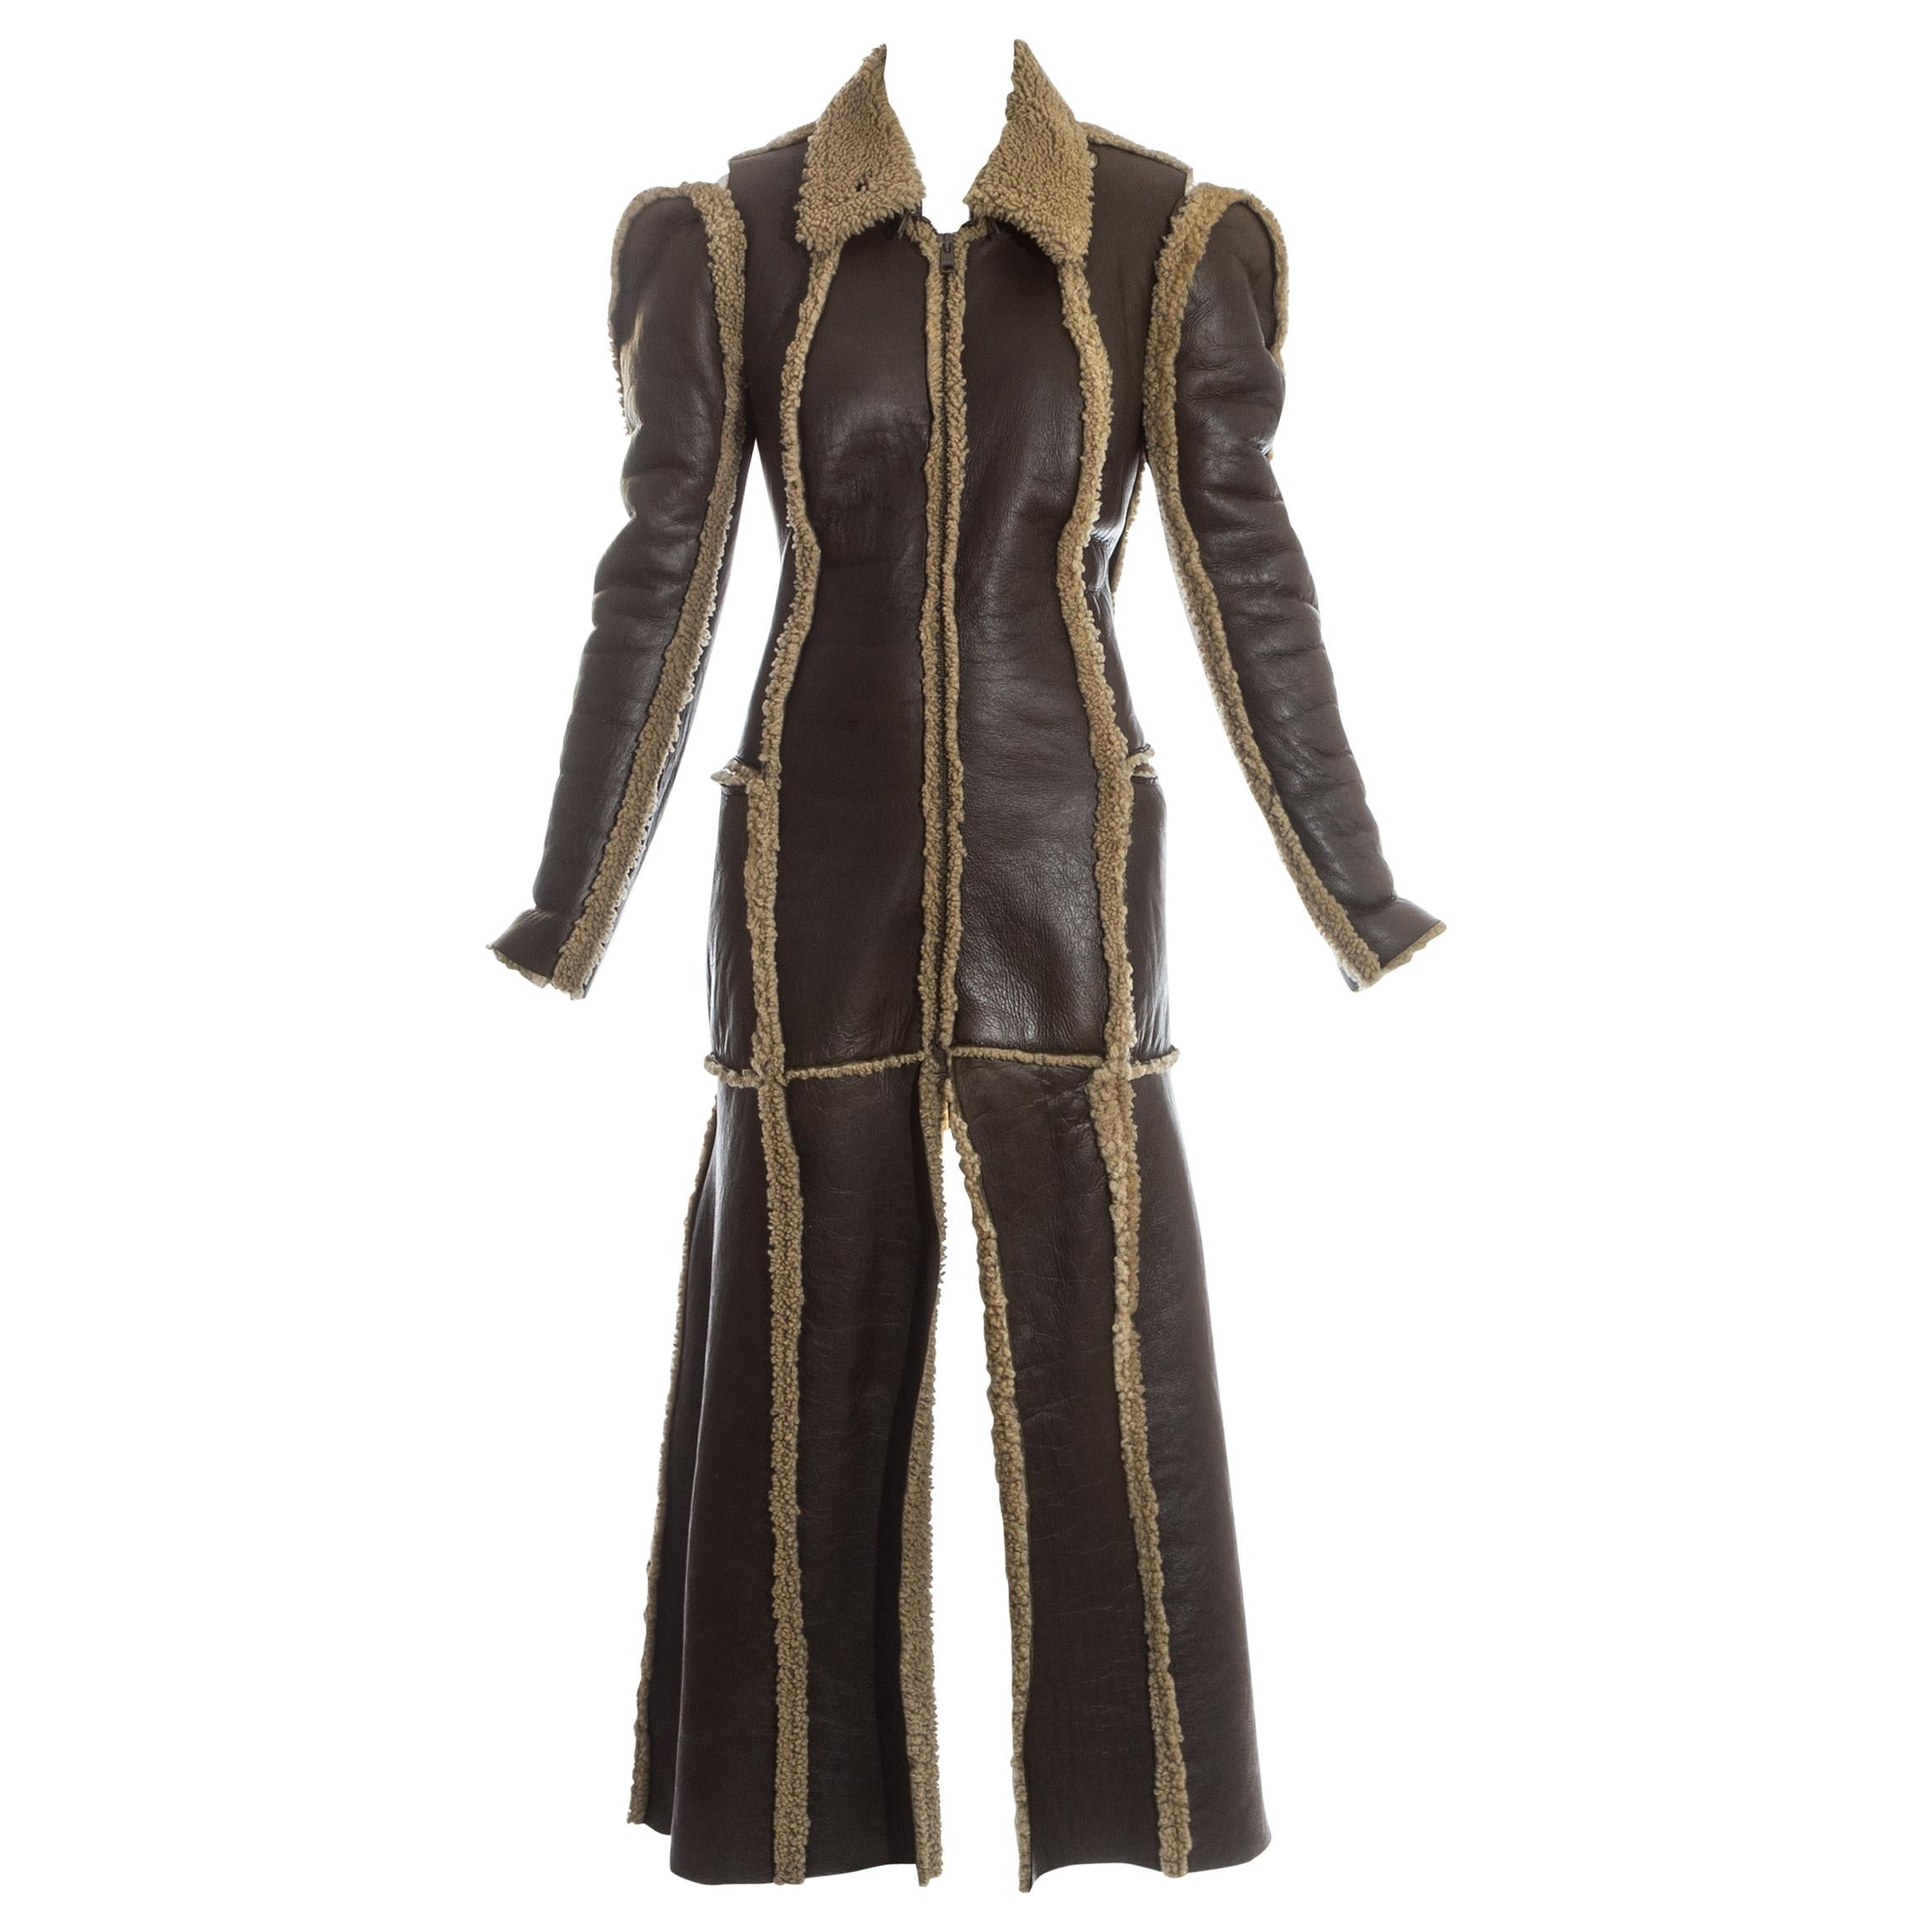 d2773a29bc Vintage Maison Martin Margiela: Shoes, Clothing & More - 234 For Sale at  1stdibs